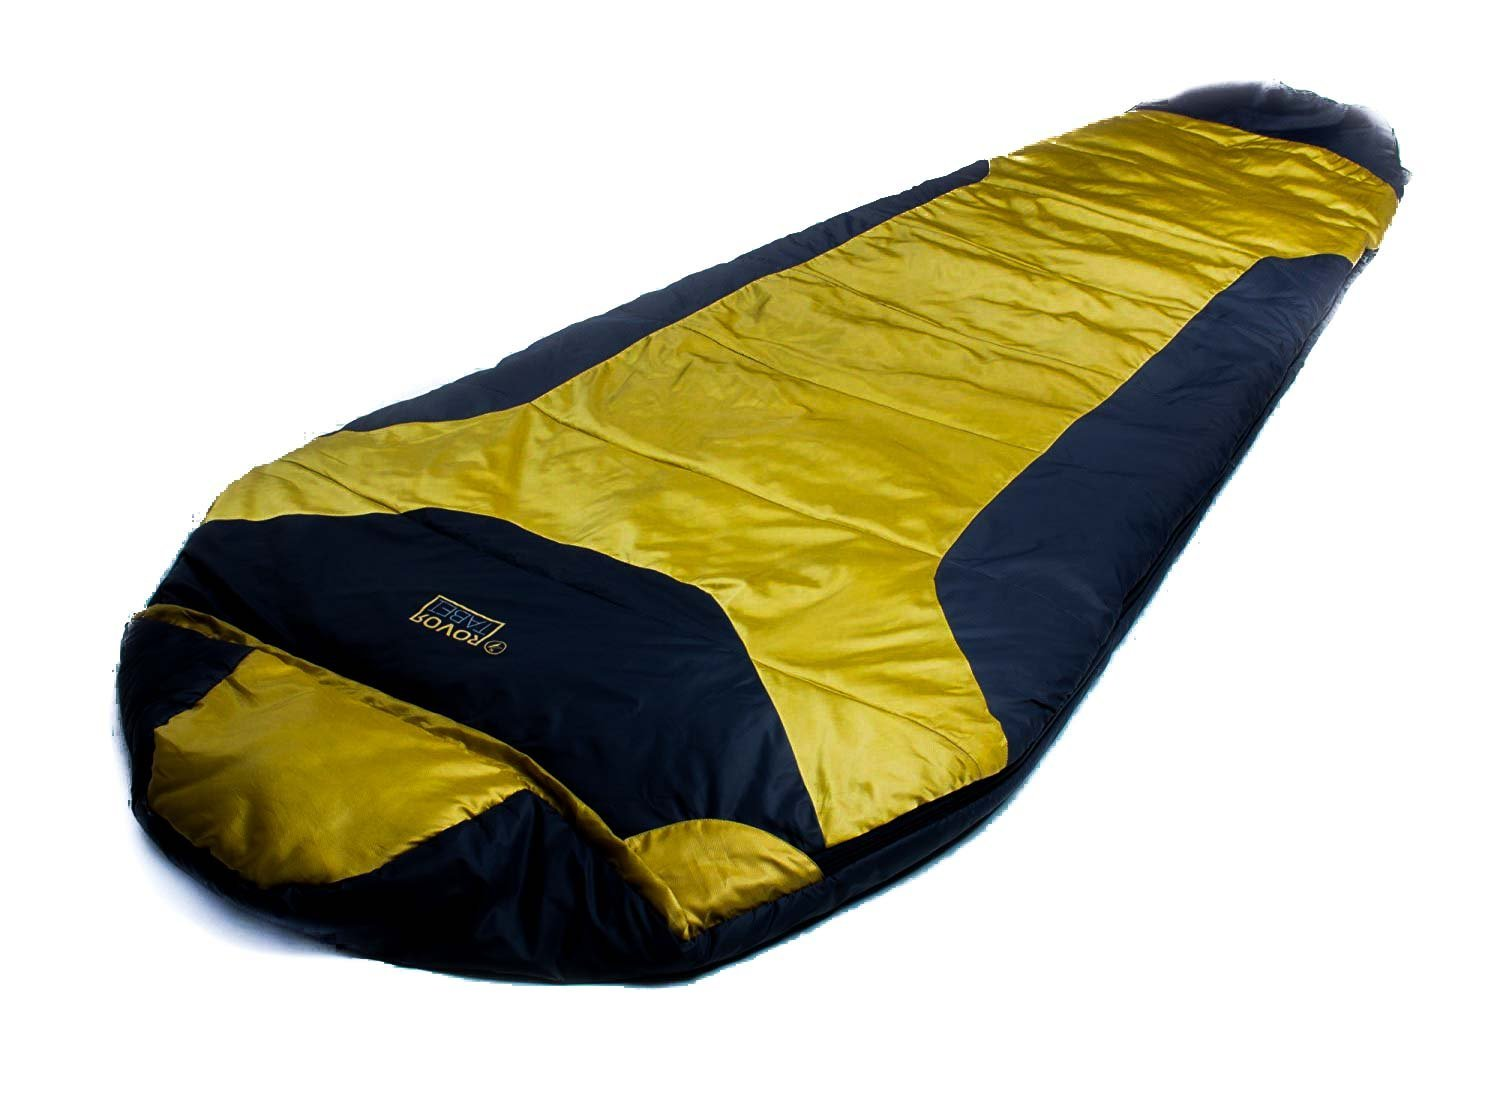 Madera Outdoor Sleeping Bag Backpacking Sleeping Bag 23° F madera outdoor  hammock companies that plant ... 6d0911f225ce